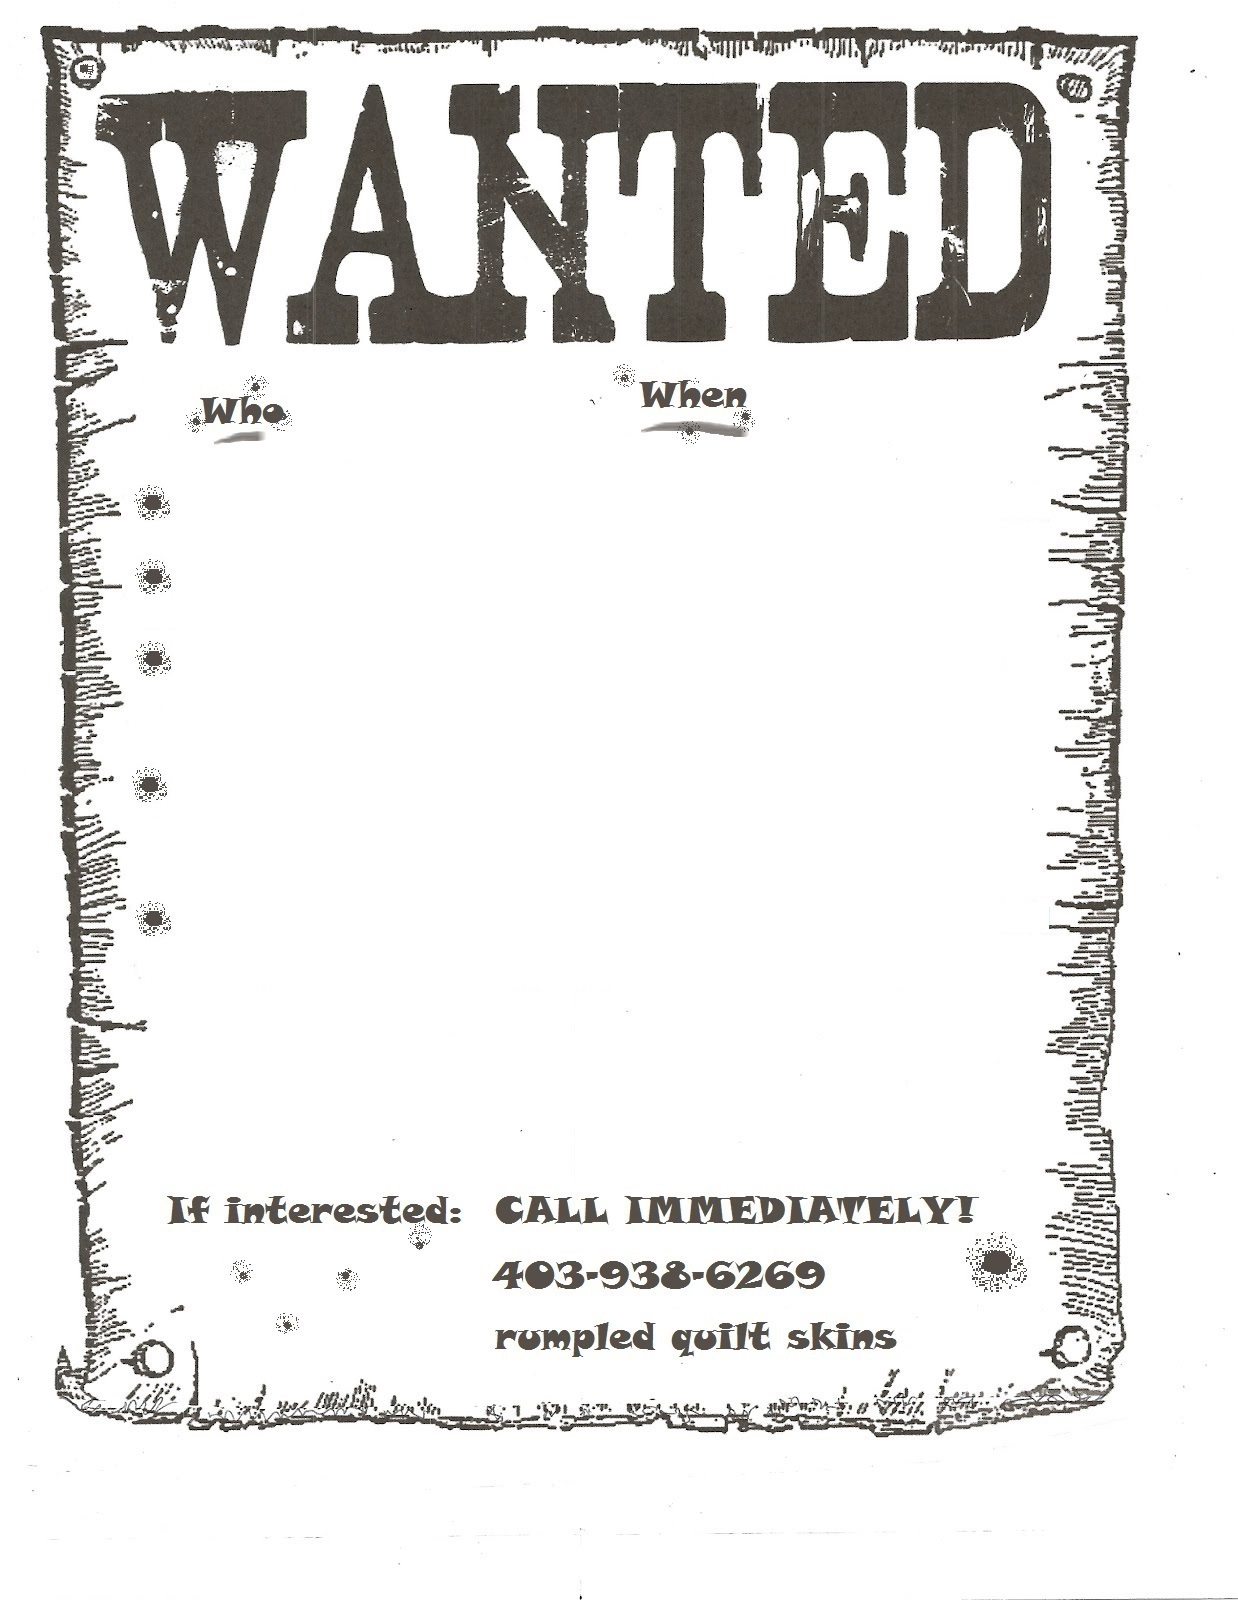 Class Wanted Poster